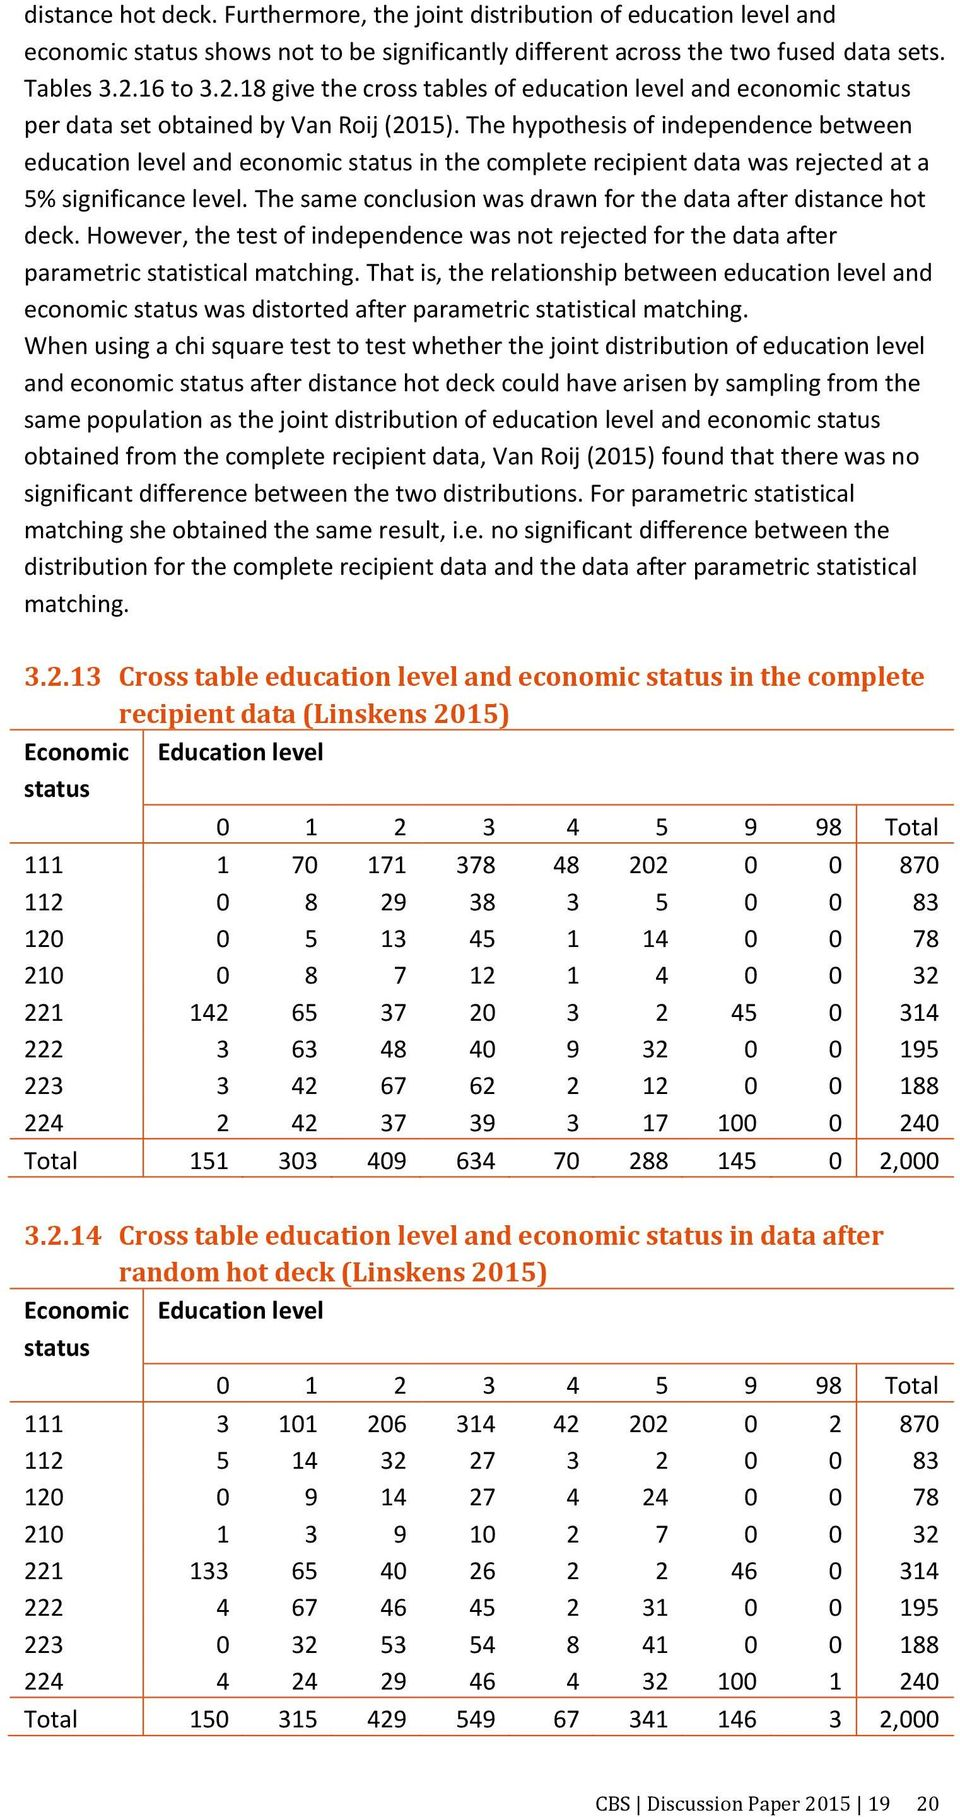 The hypothesis of independence between education level and economic status in the complete recipient data was rejected at a 5% significance level.